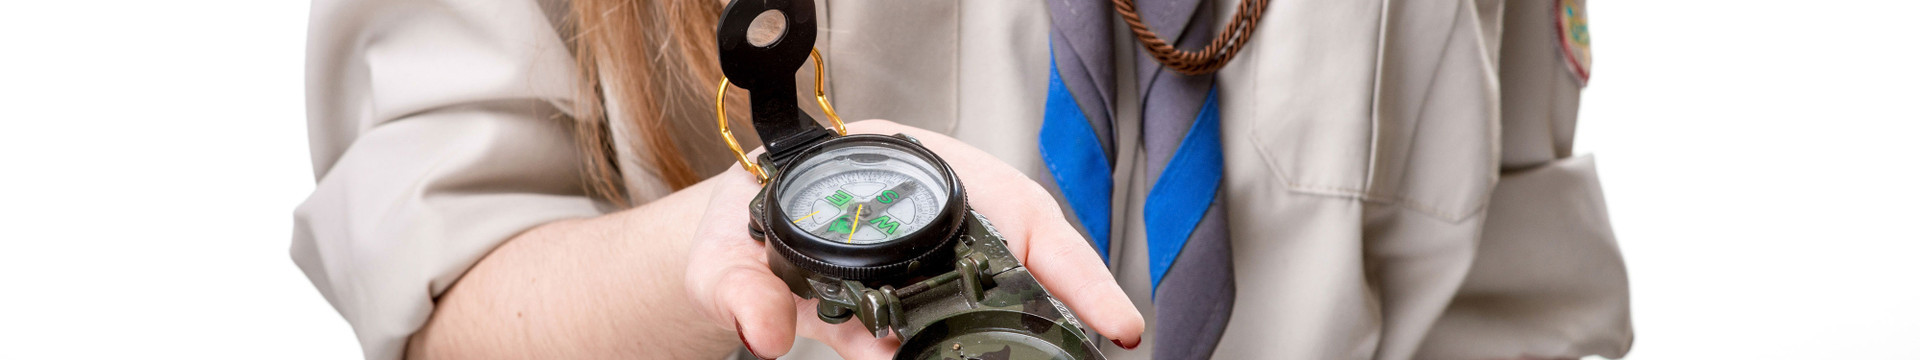 Make Your Branson Scout Meeting Memorable - Scout holding compass